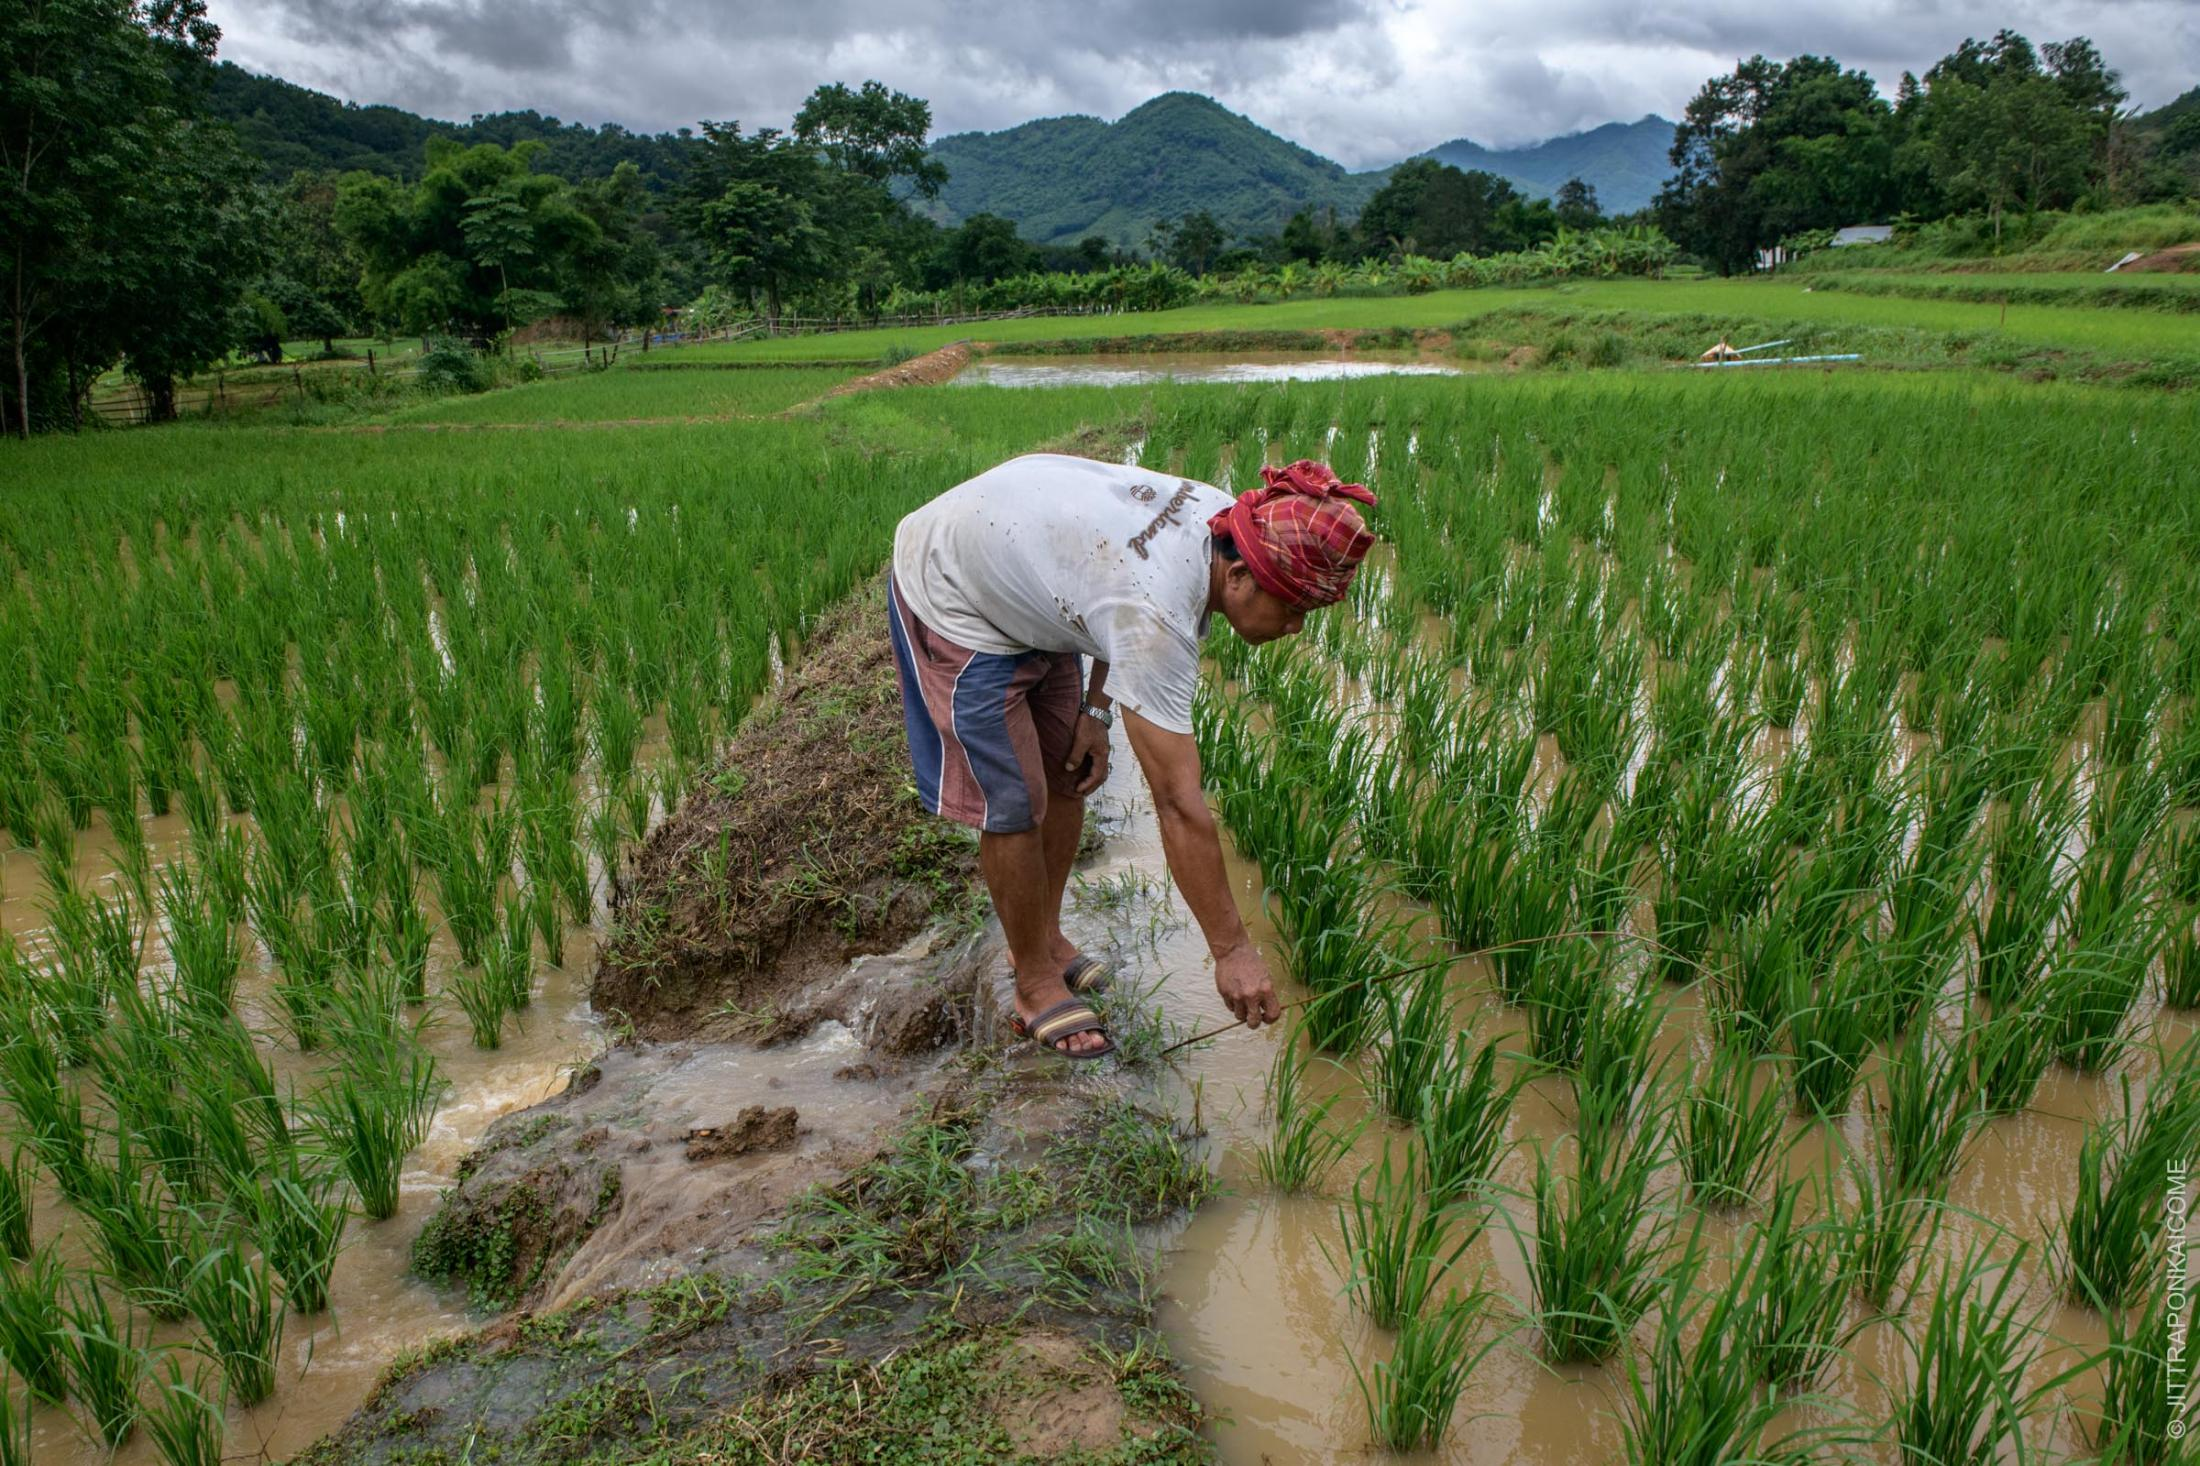 A fisherman is placing a small rod to trap fish in the rice field. Many of the fishers now work as rice farmers to increase their income, after the fishing industry became unprofitable. In Nong Khai, Thailand – August 2020.